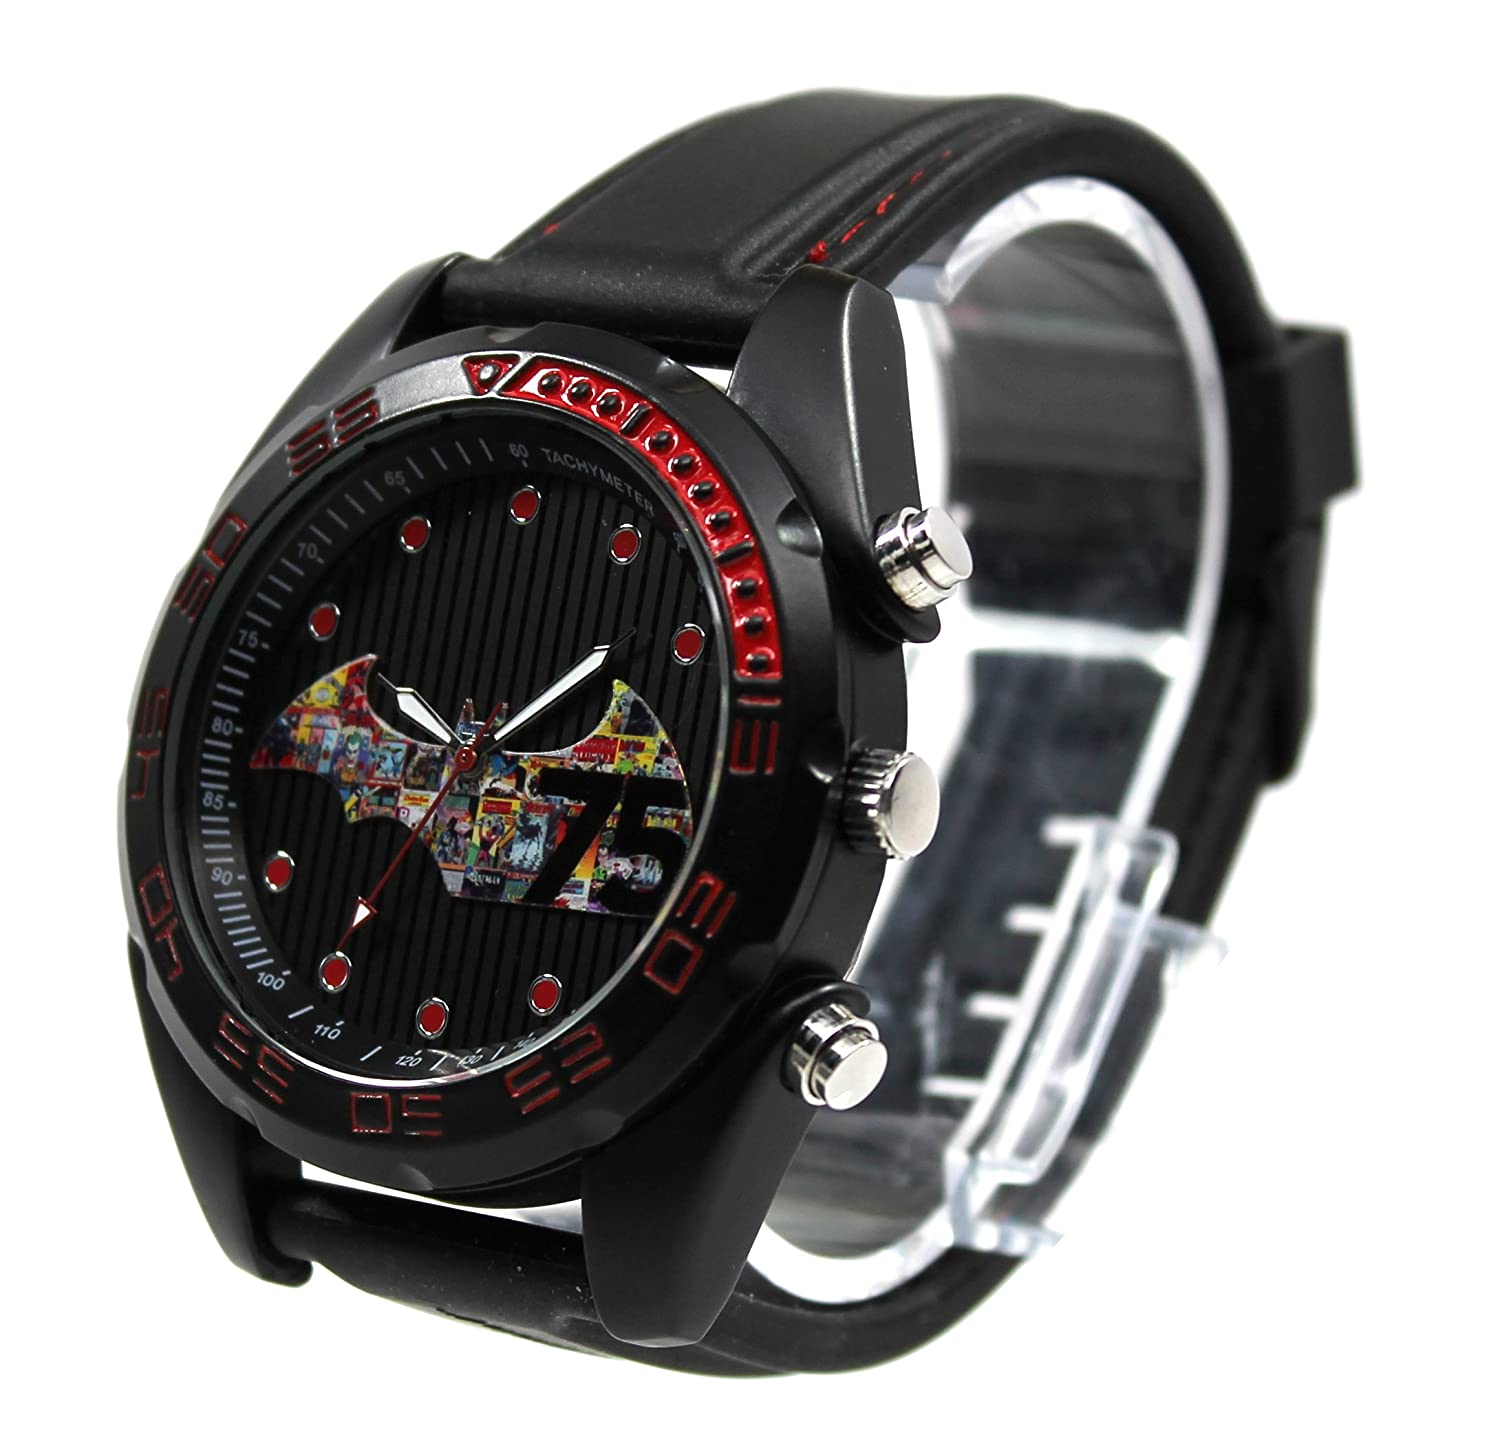 best watches boutique indie oscar featured full gear and price low patrol brands lead watch oak affordable